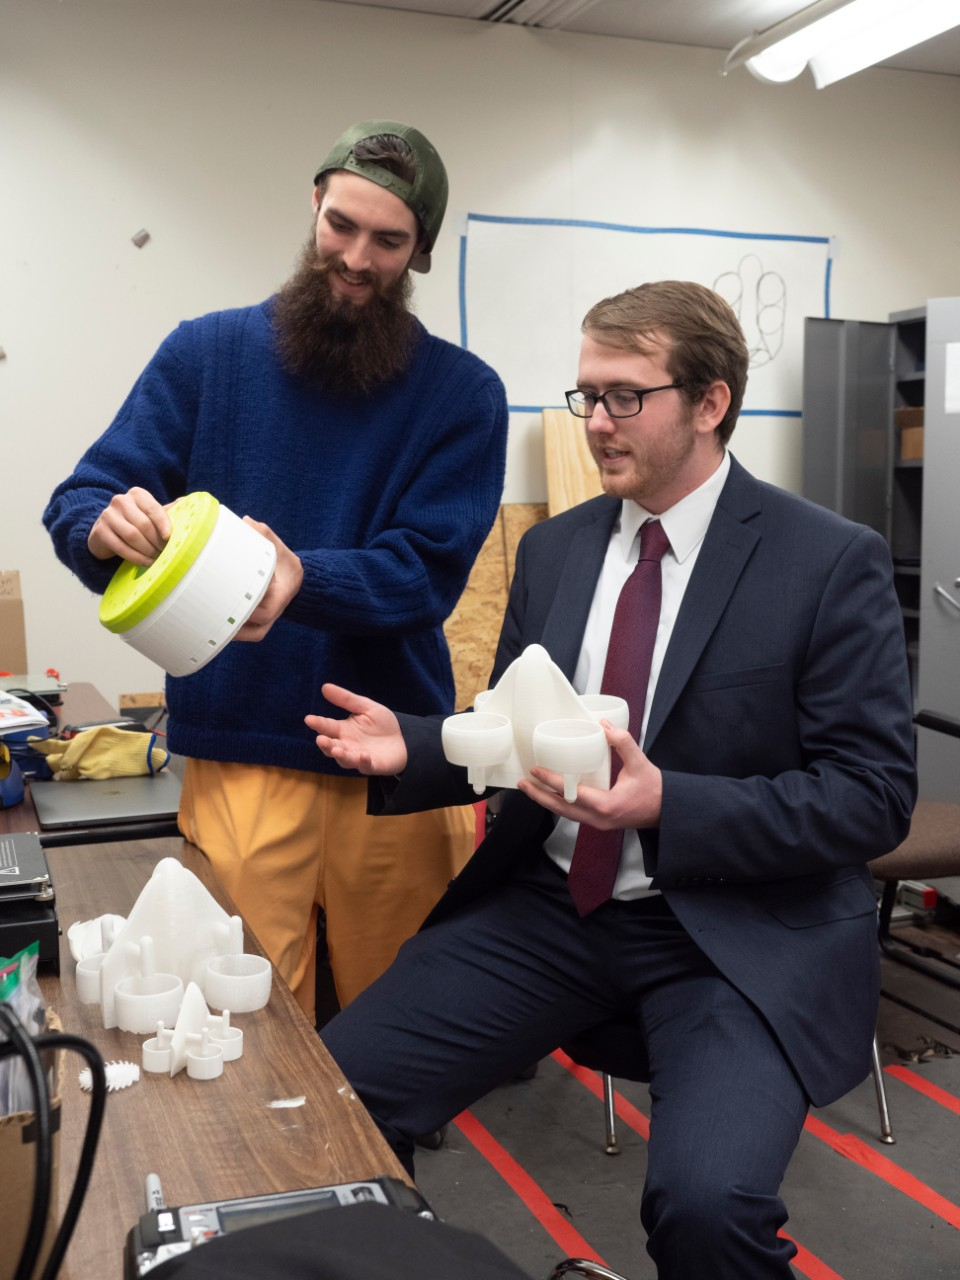 UC students hold up 3D models in their engineering lab.